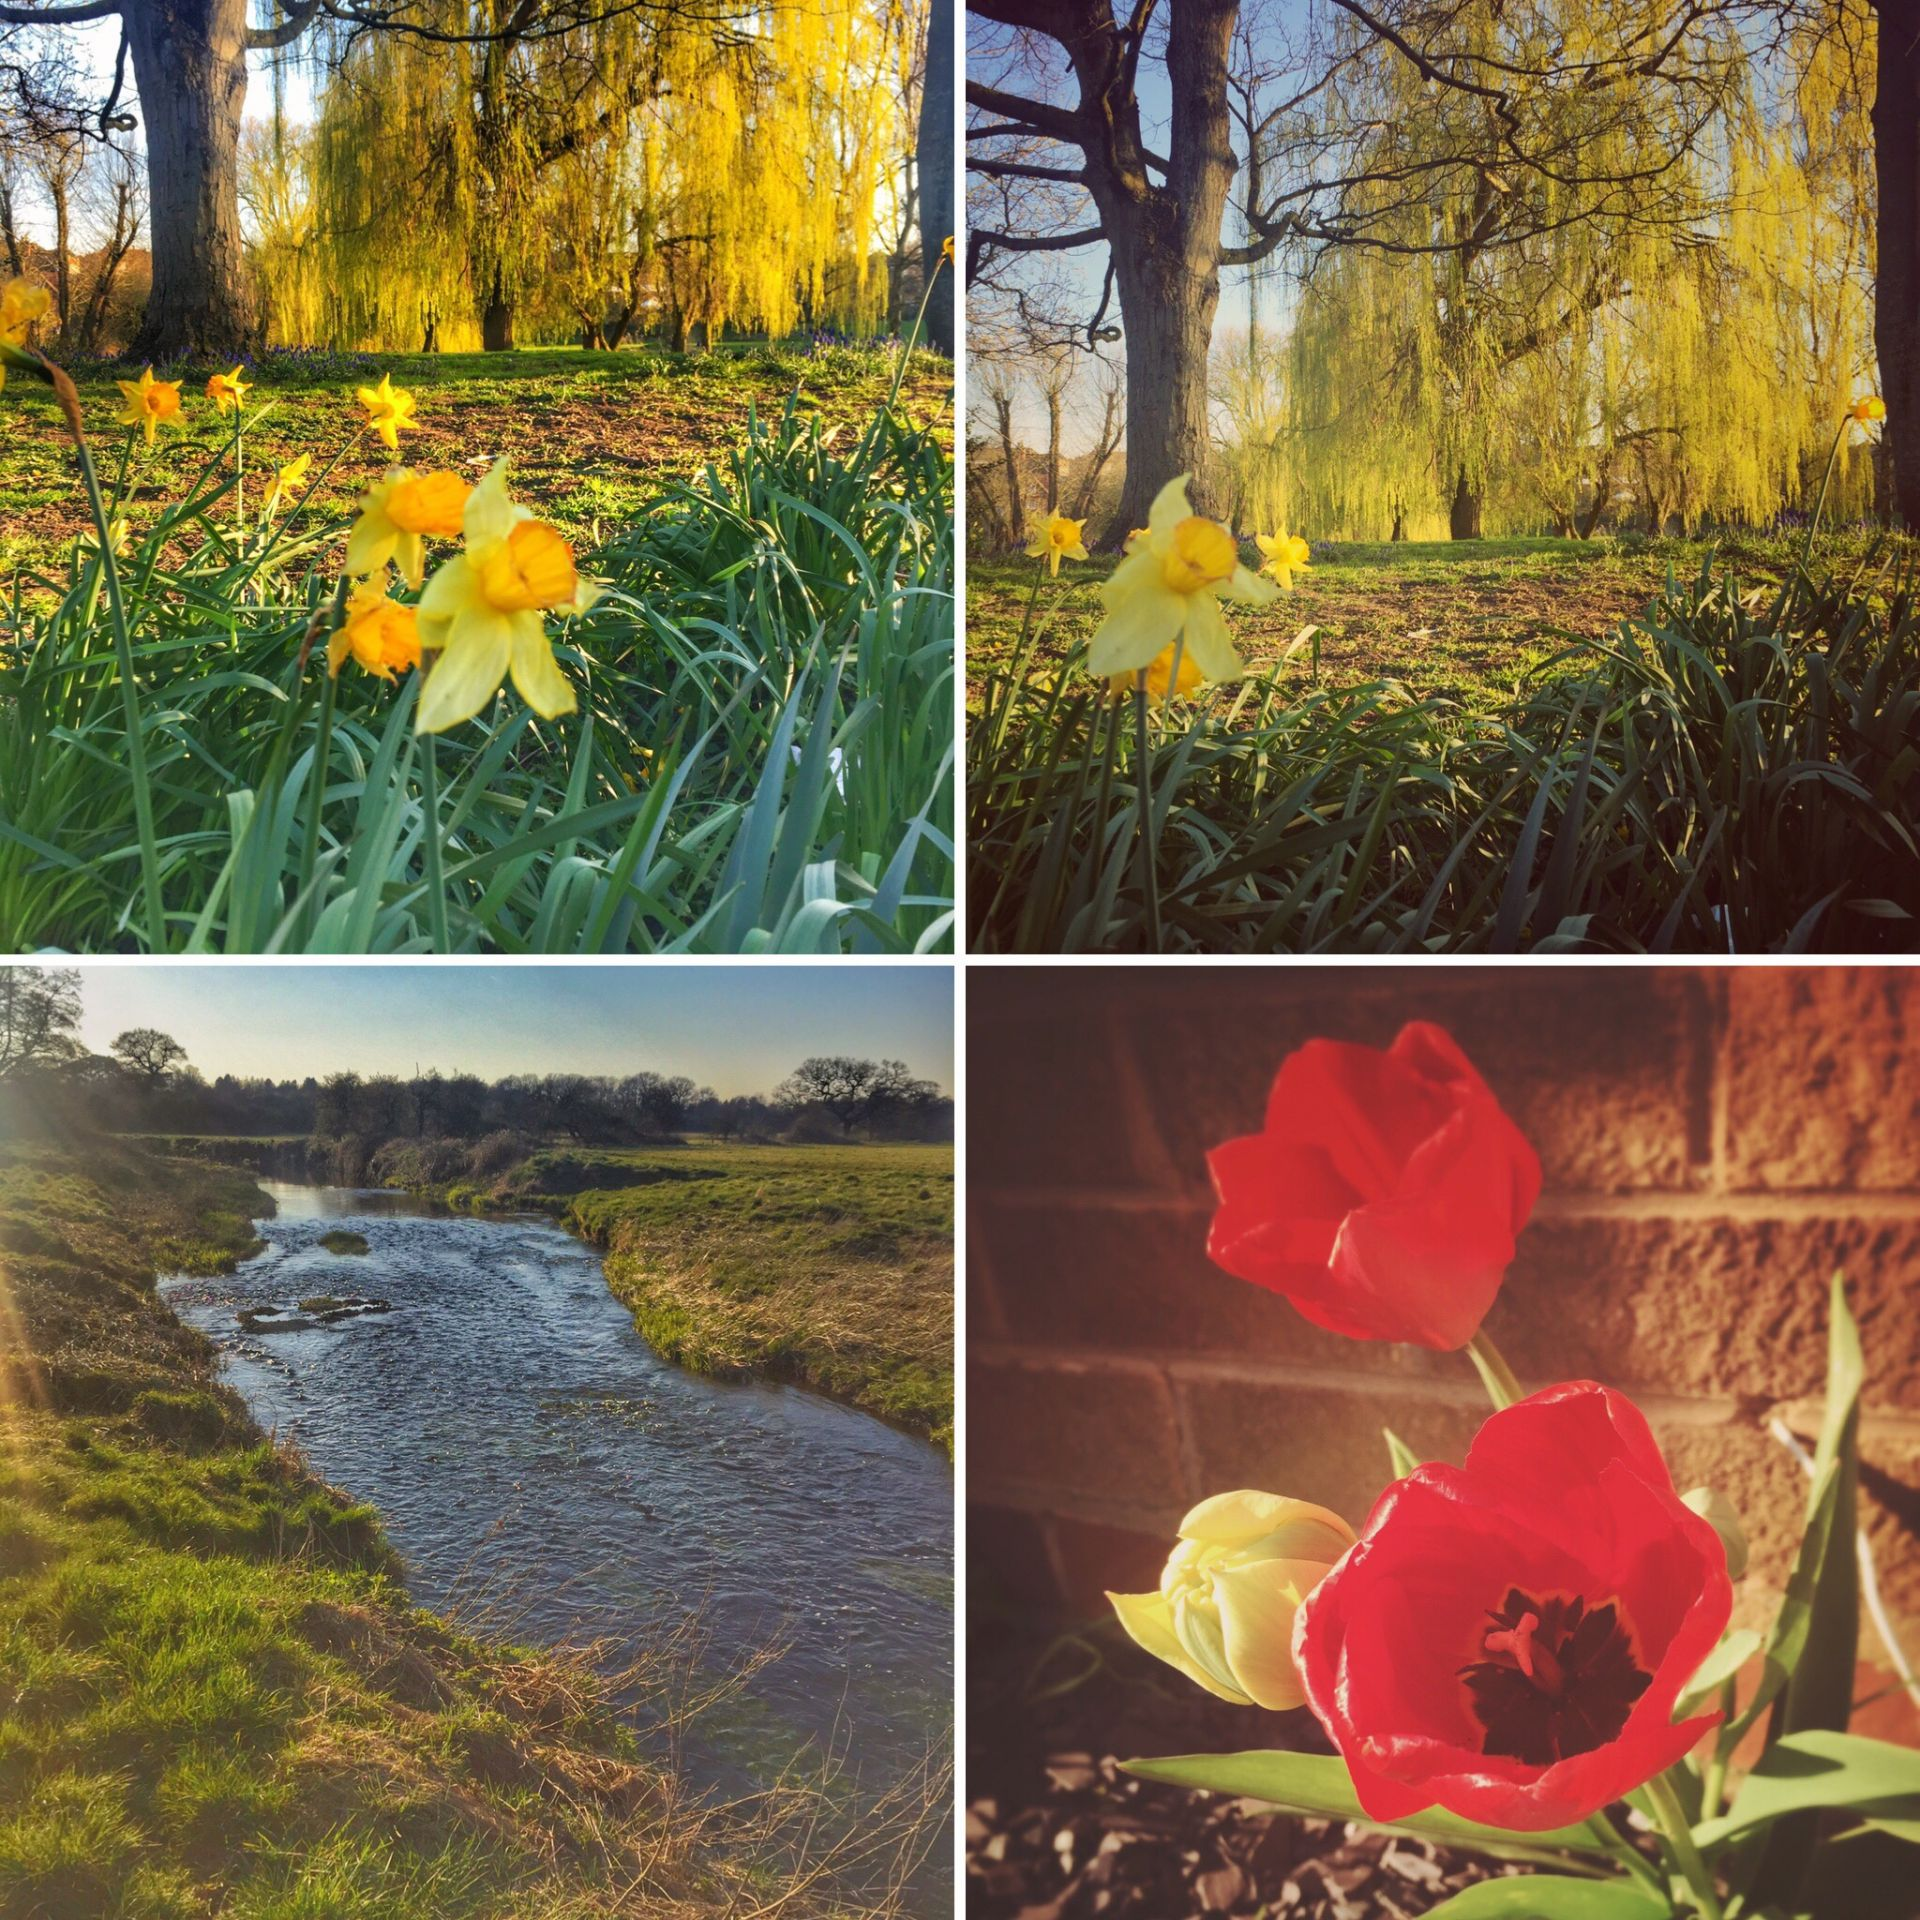 A collage of shots from a riverside walk, including yellow daffodils and red tulips